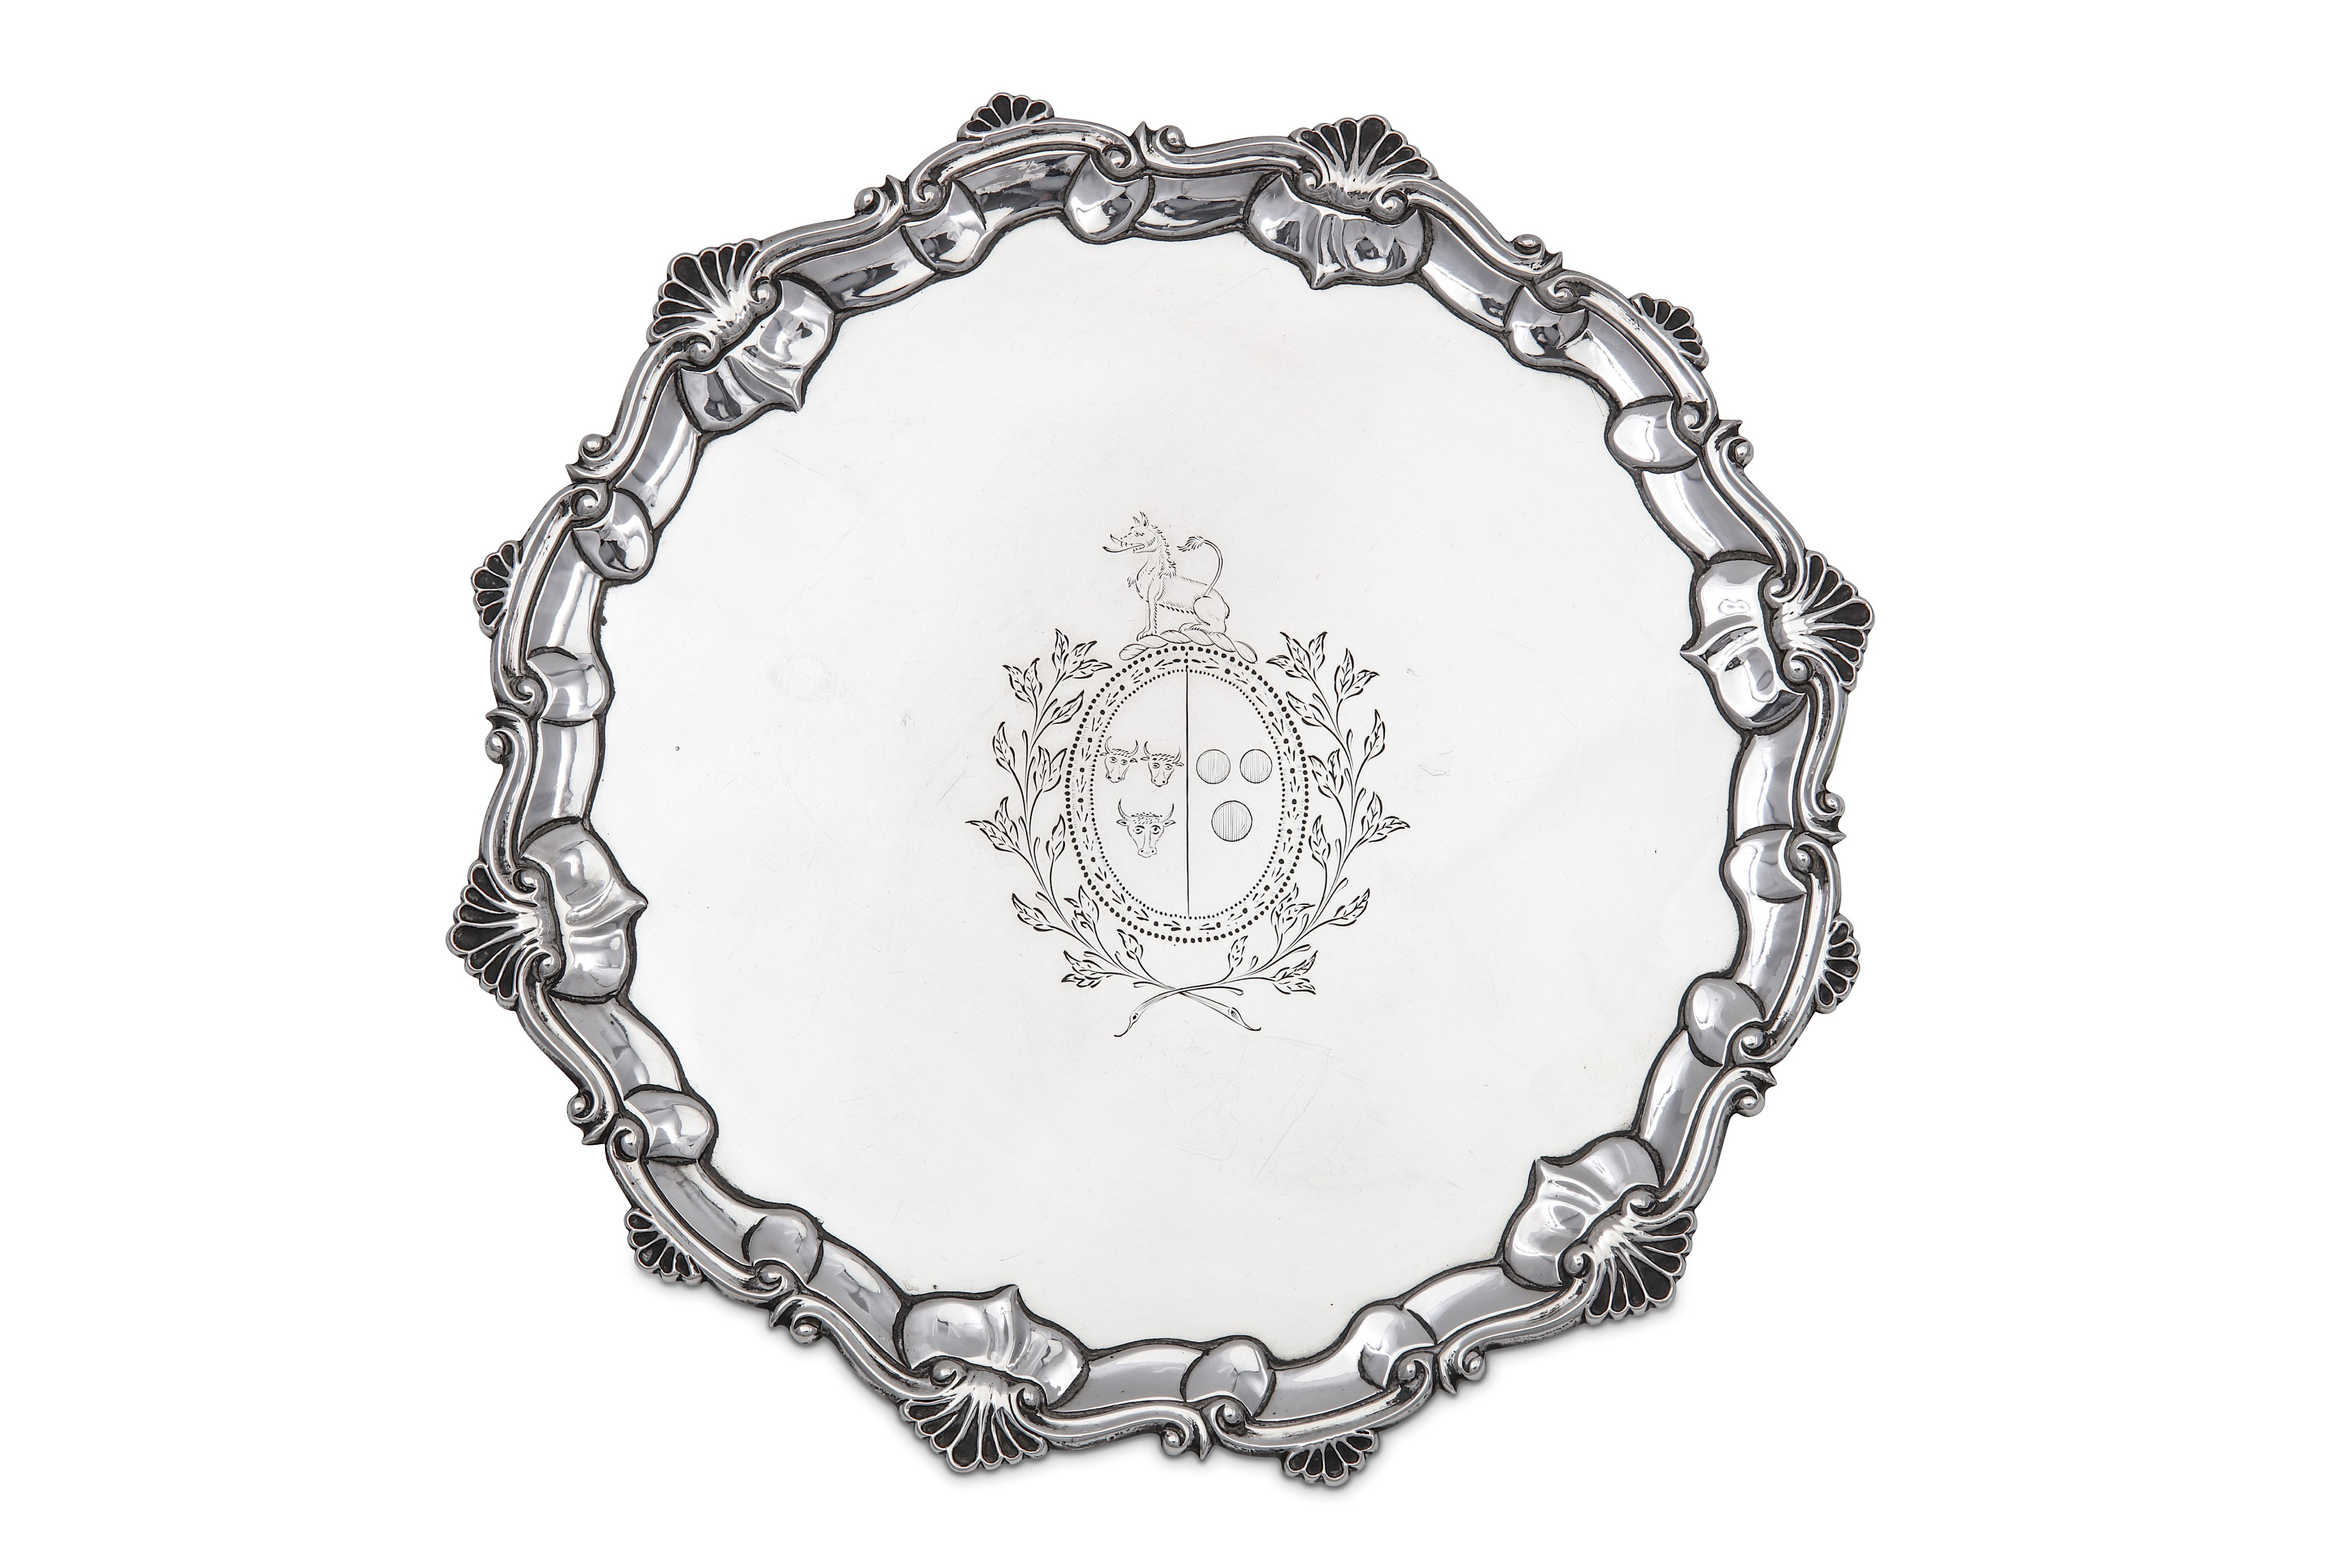 Lot 47 - A George III sterling silver salver, London 1765 by T.H over I.C indented, probably for Thomas Hanna